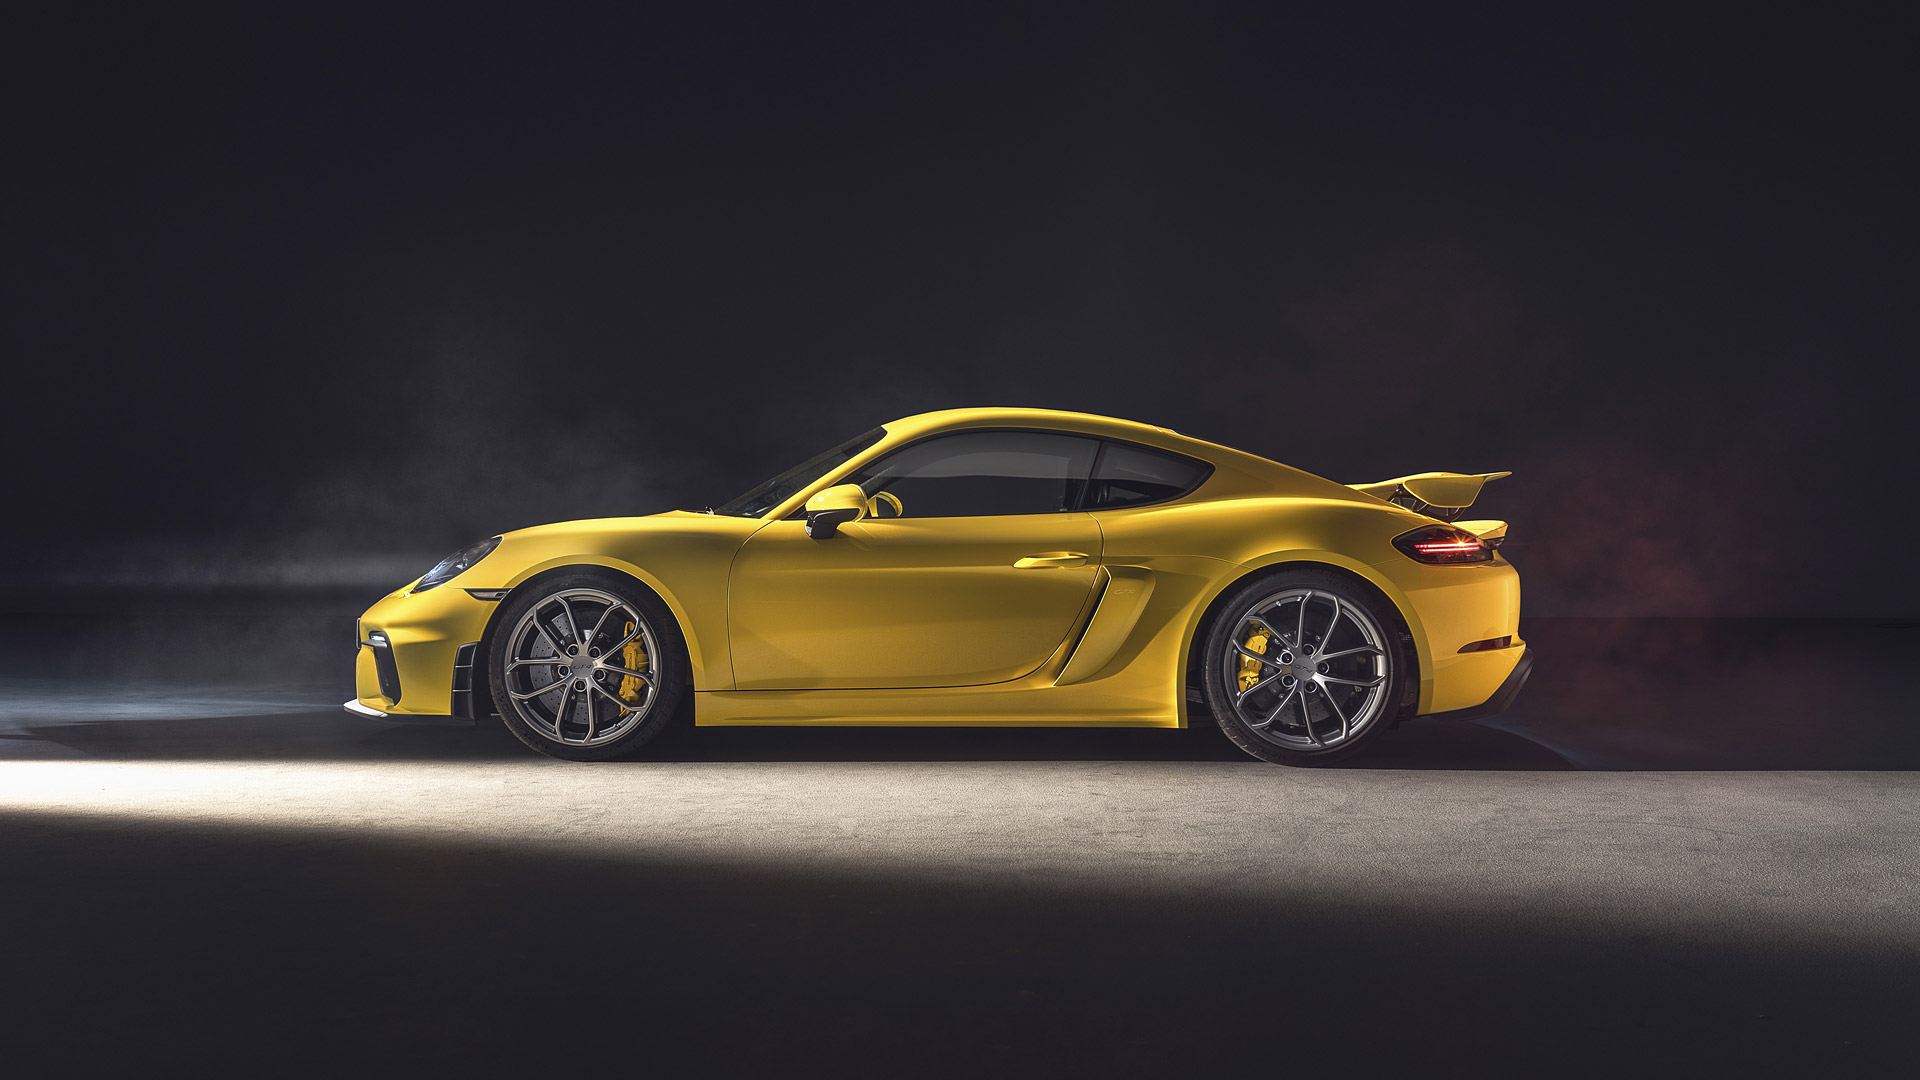 2019 Porsche 718 Cayman GT4 Wallpapers